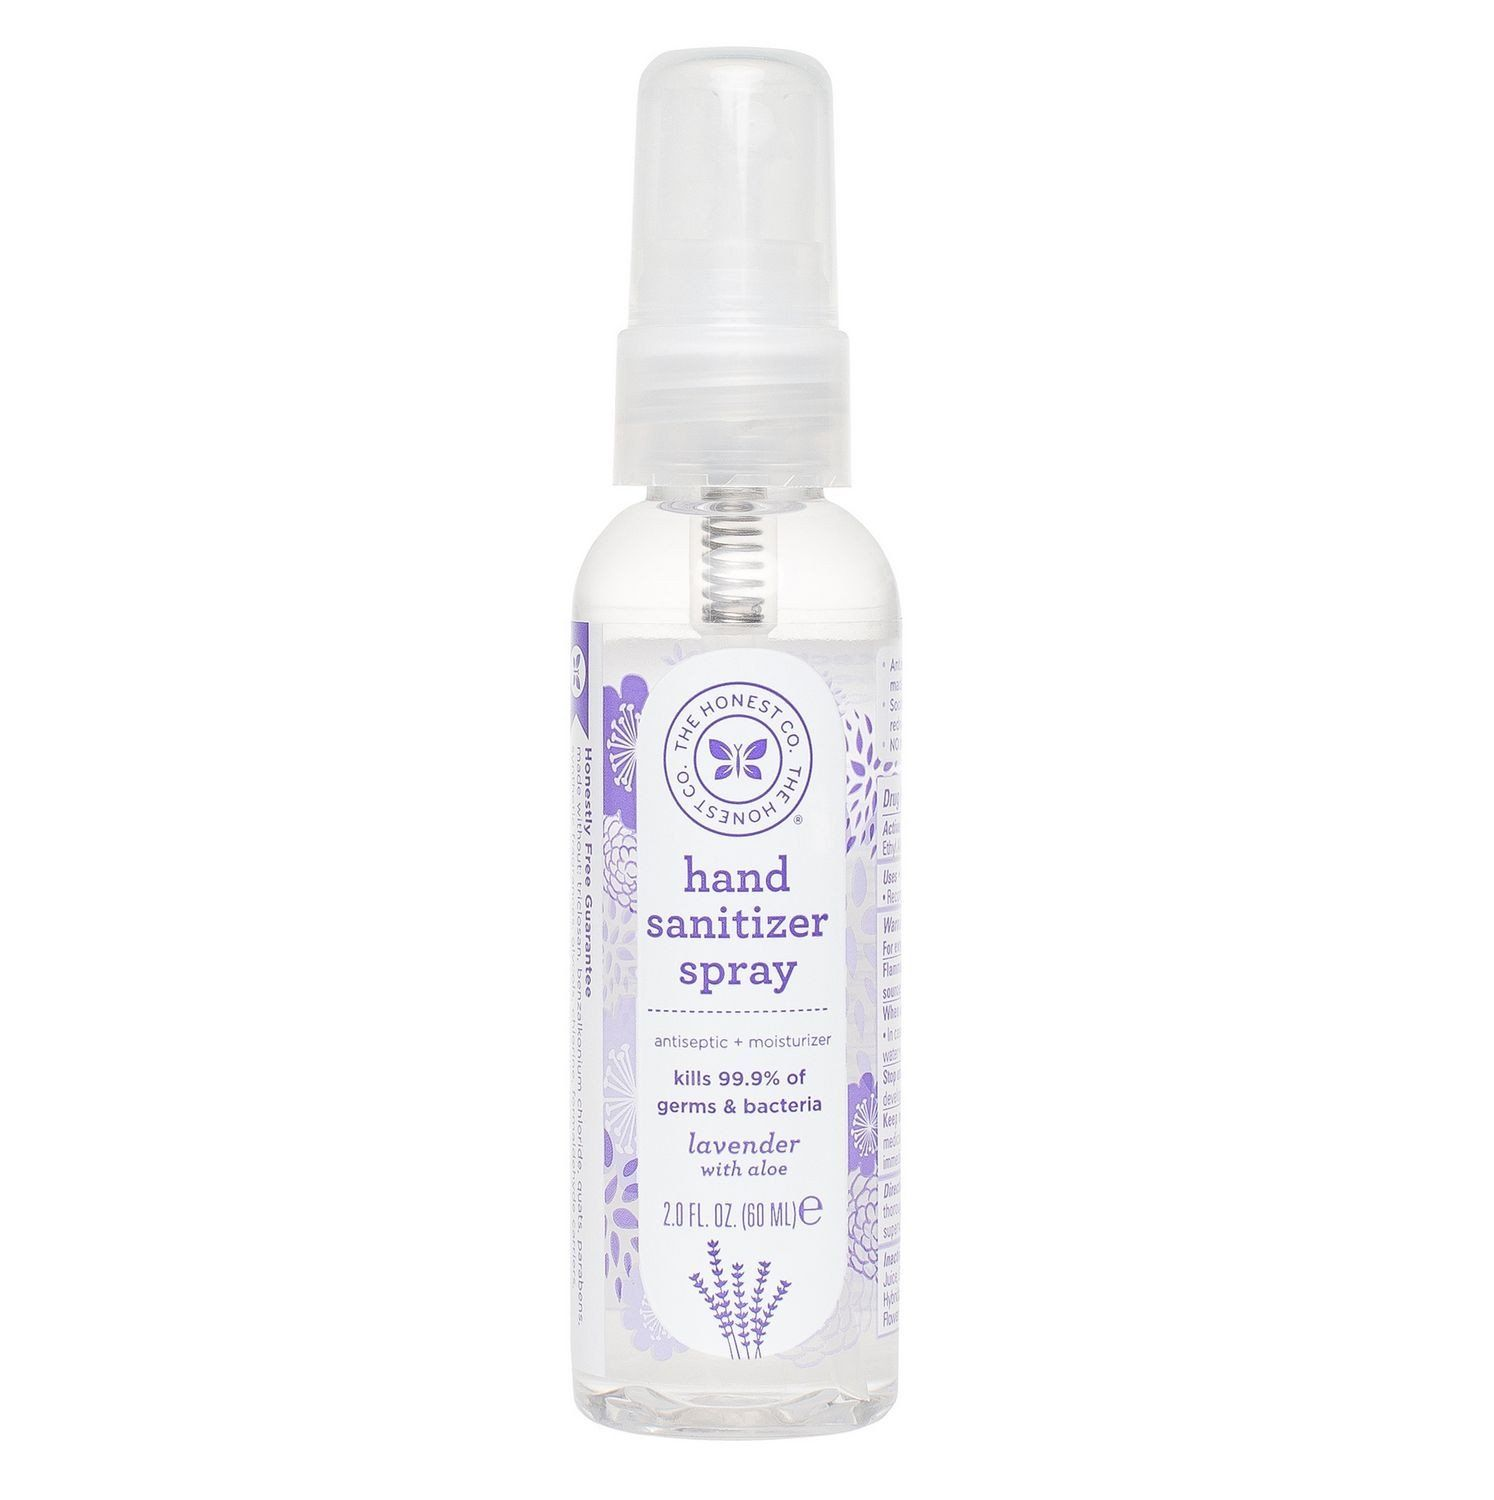 The Honest Company Honest Hand Sanitizer Spray 2oz Lavender